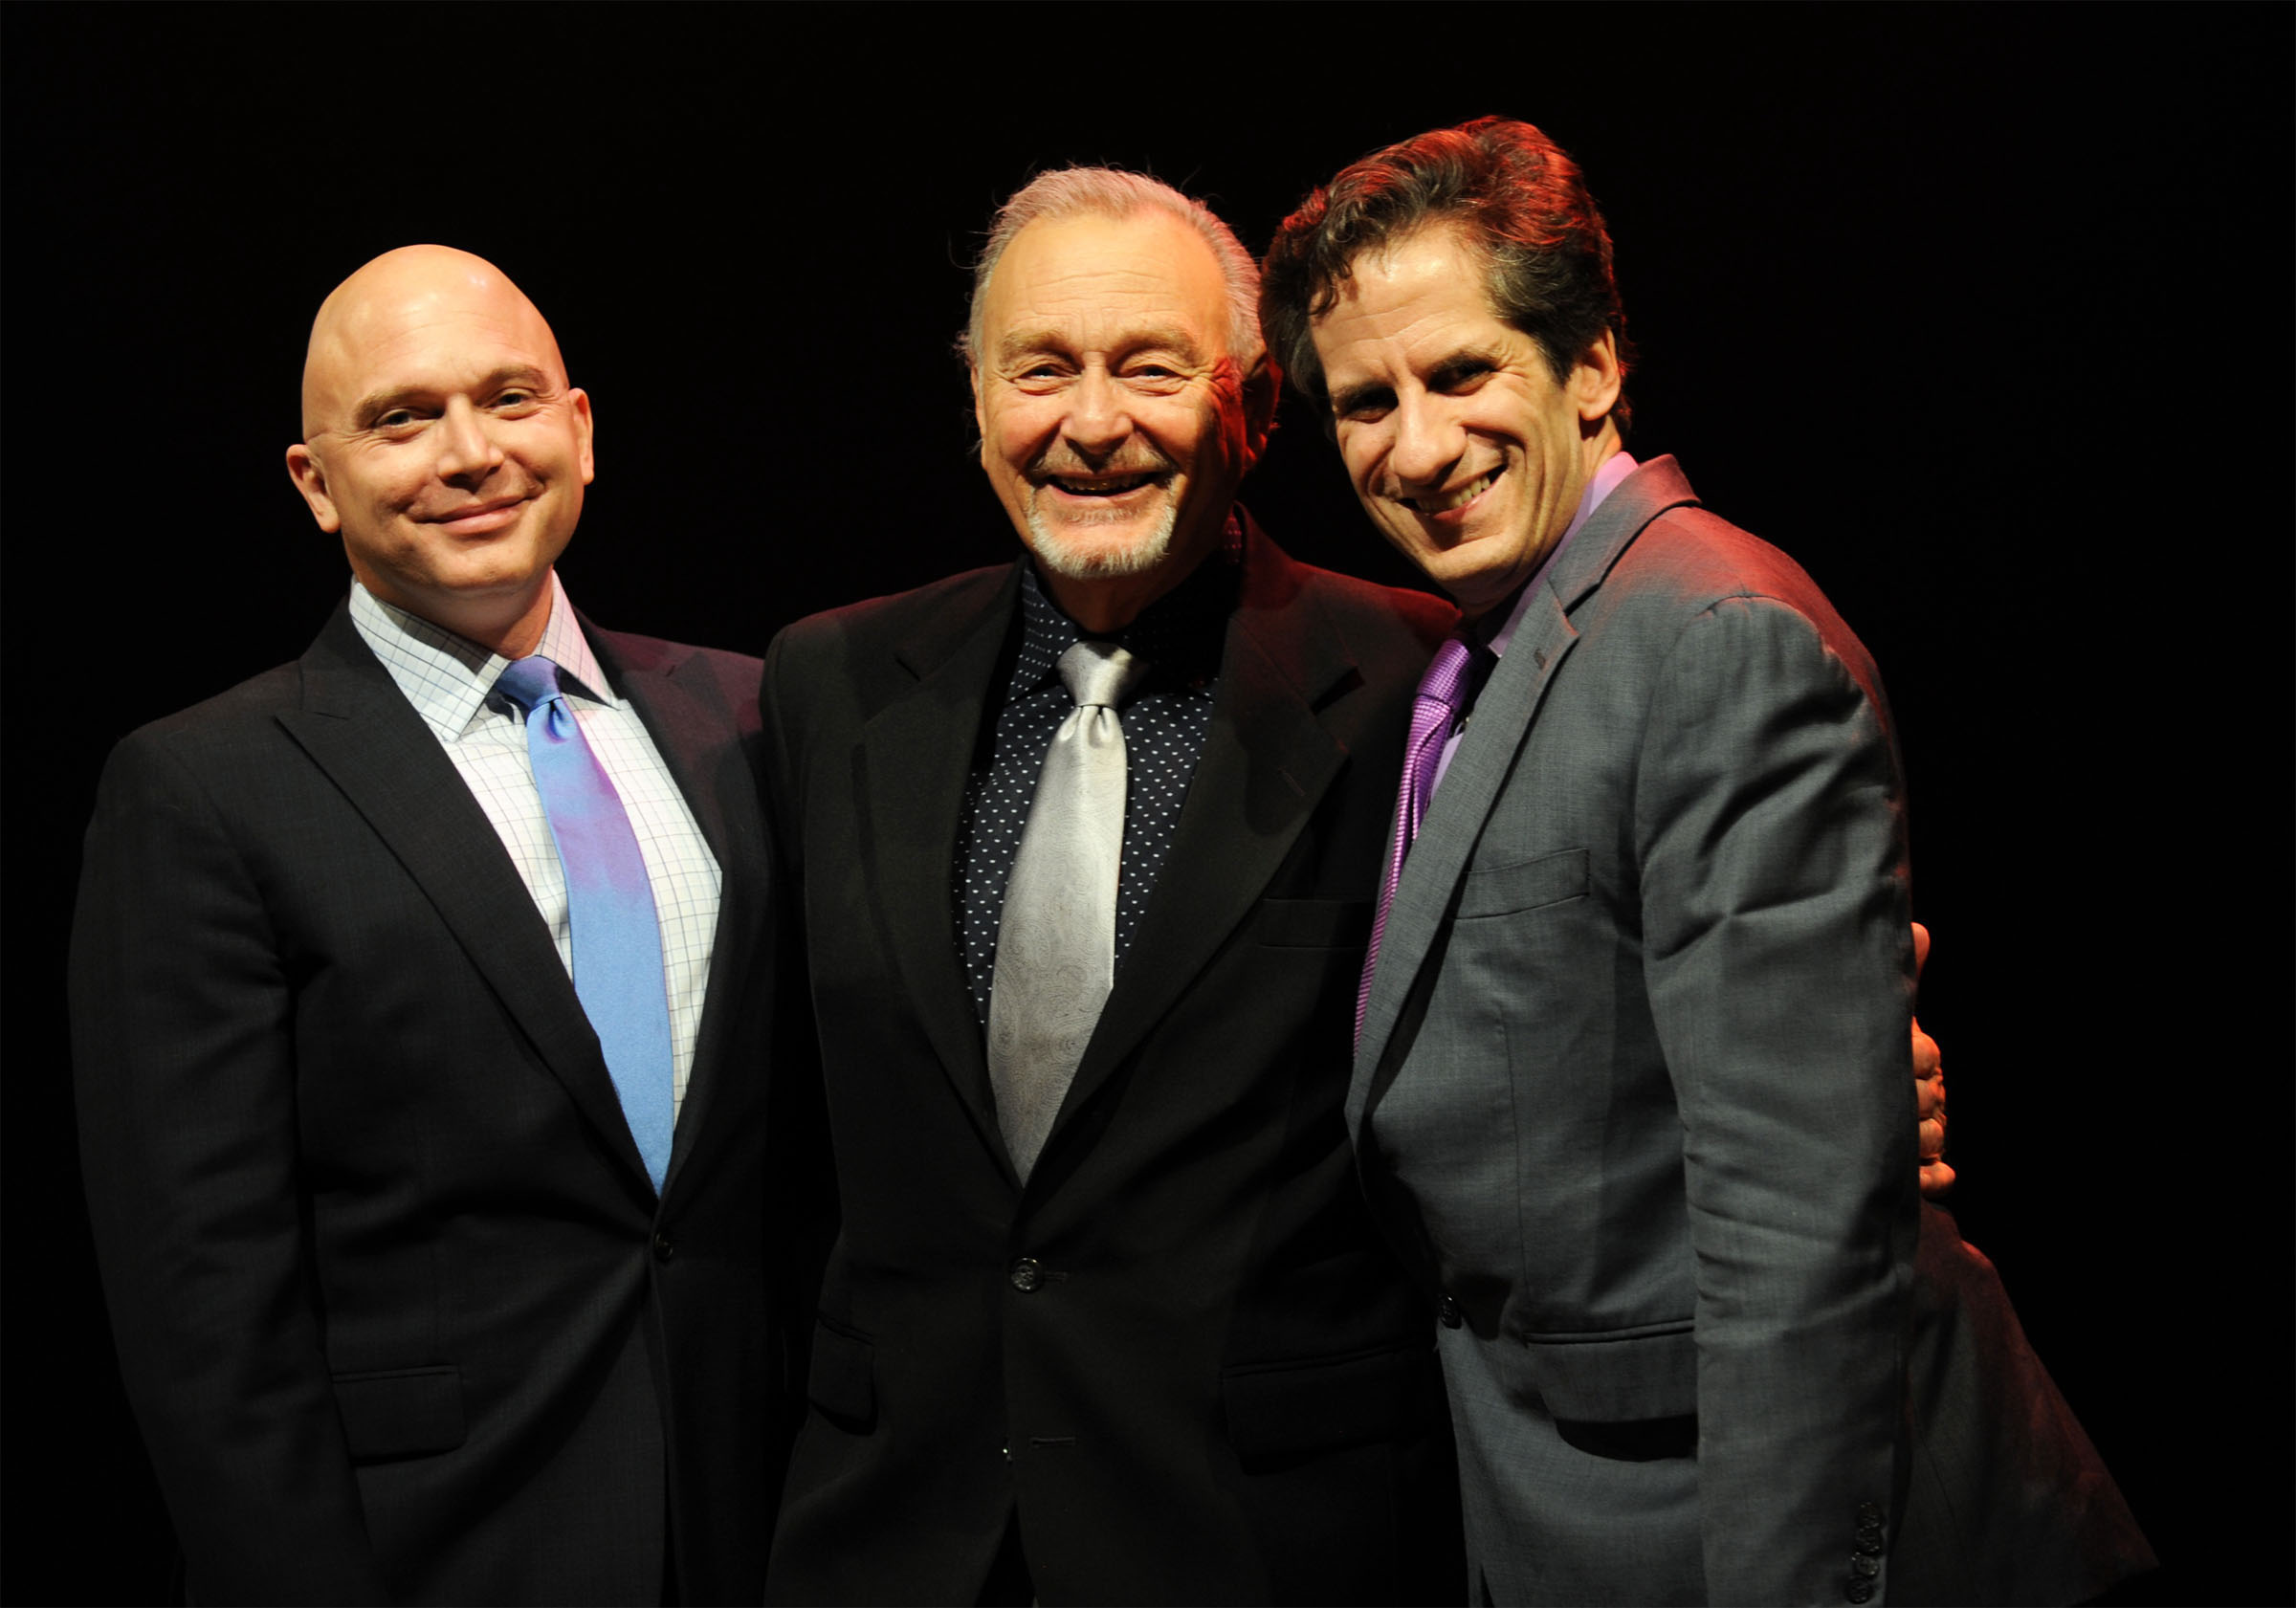 Broadway's Michael Cerveris & Father with Seth Rudetsky